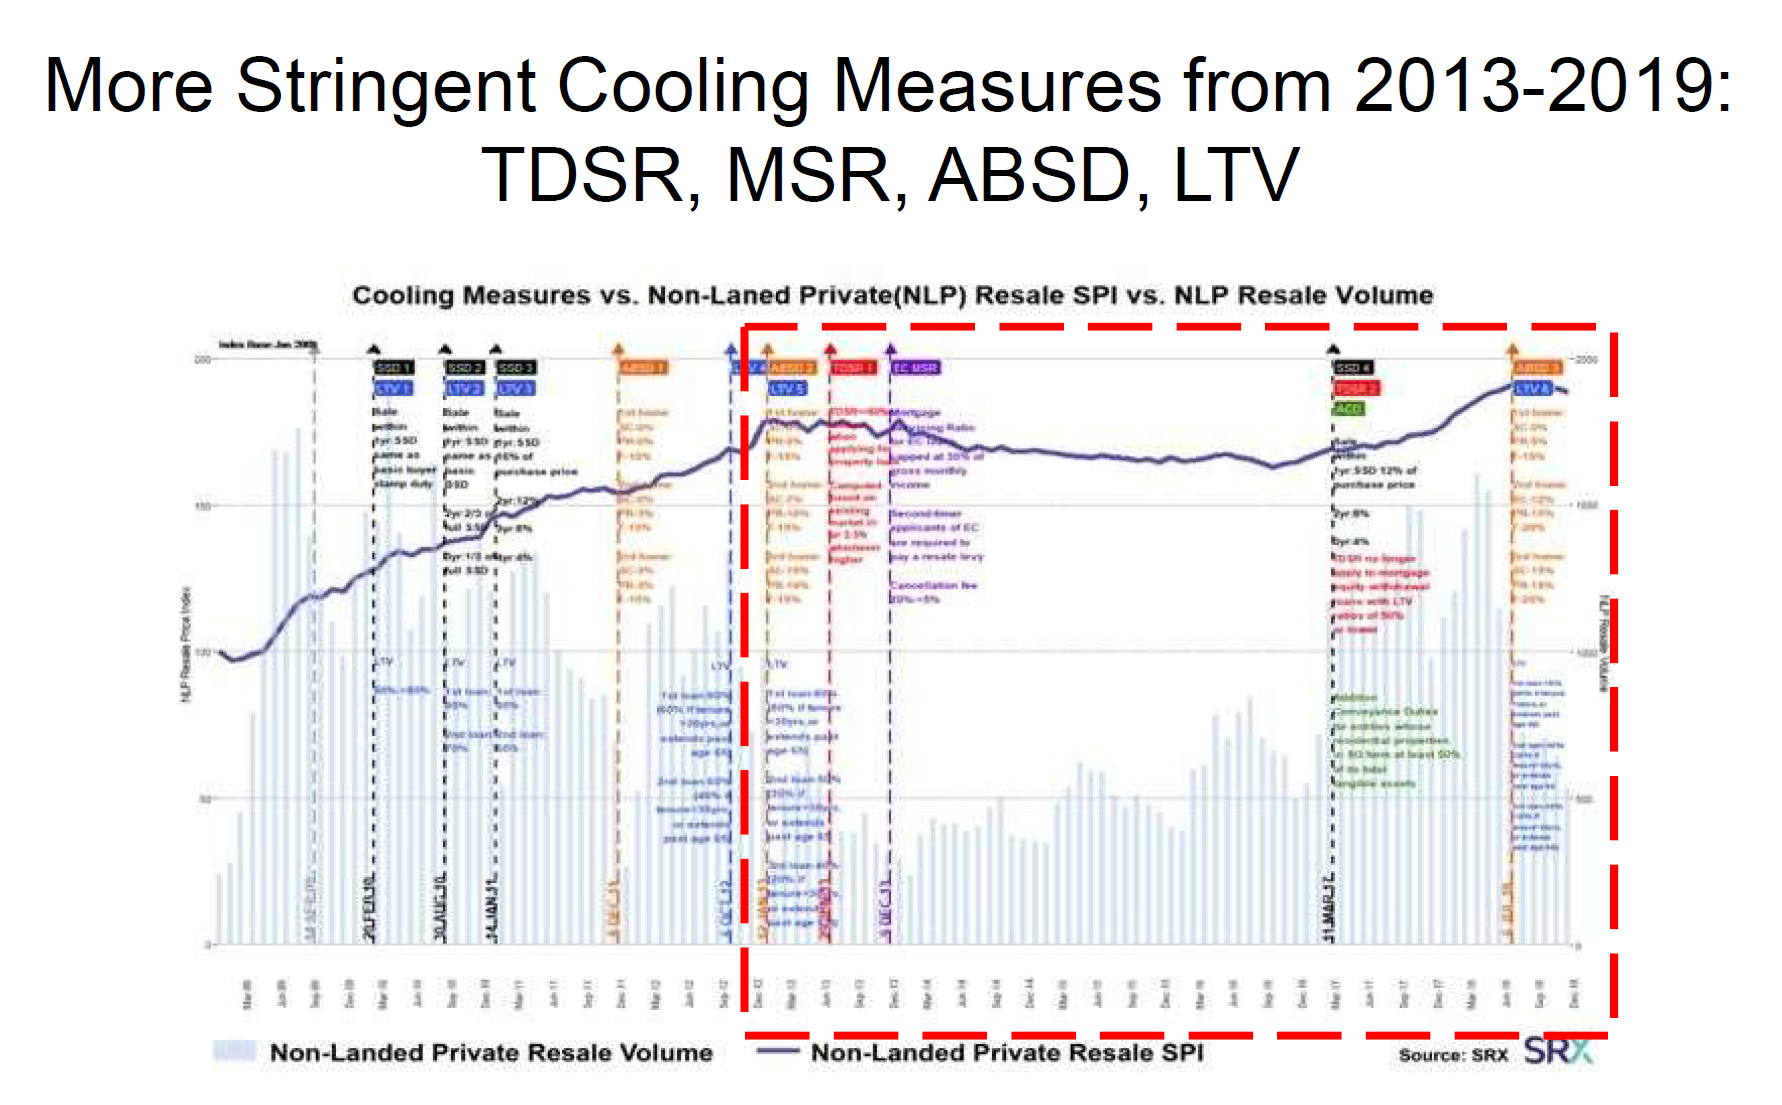 Cooling Measures introduced between 2013 to 2019